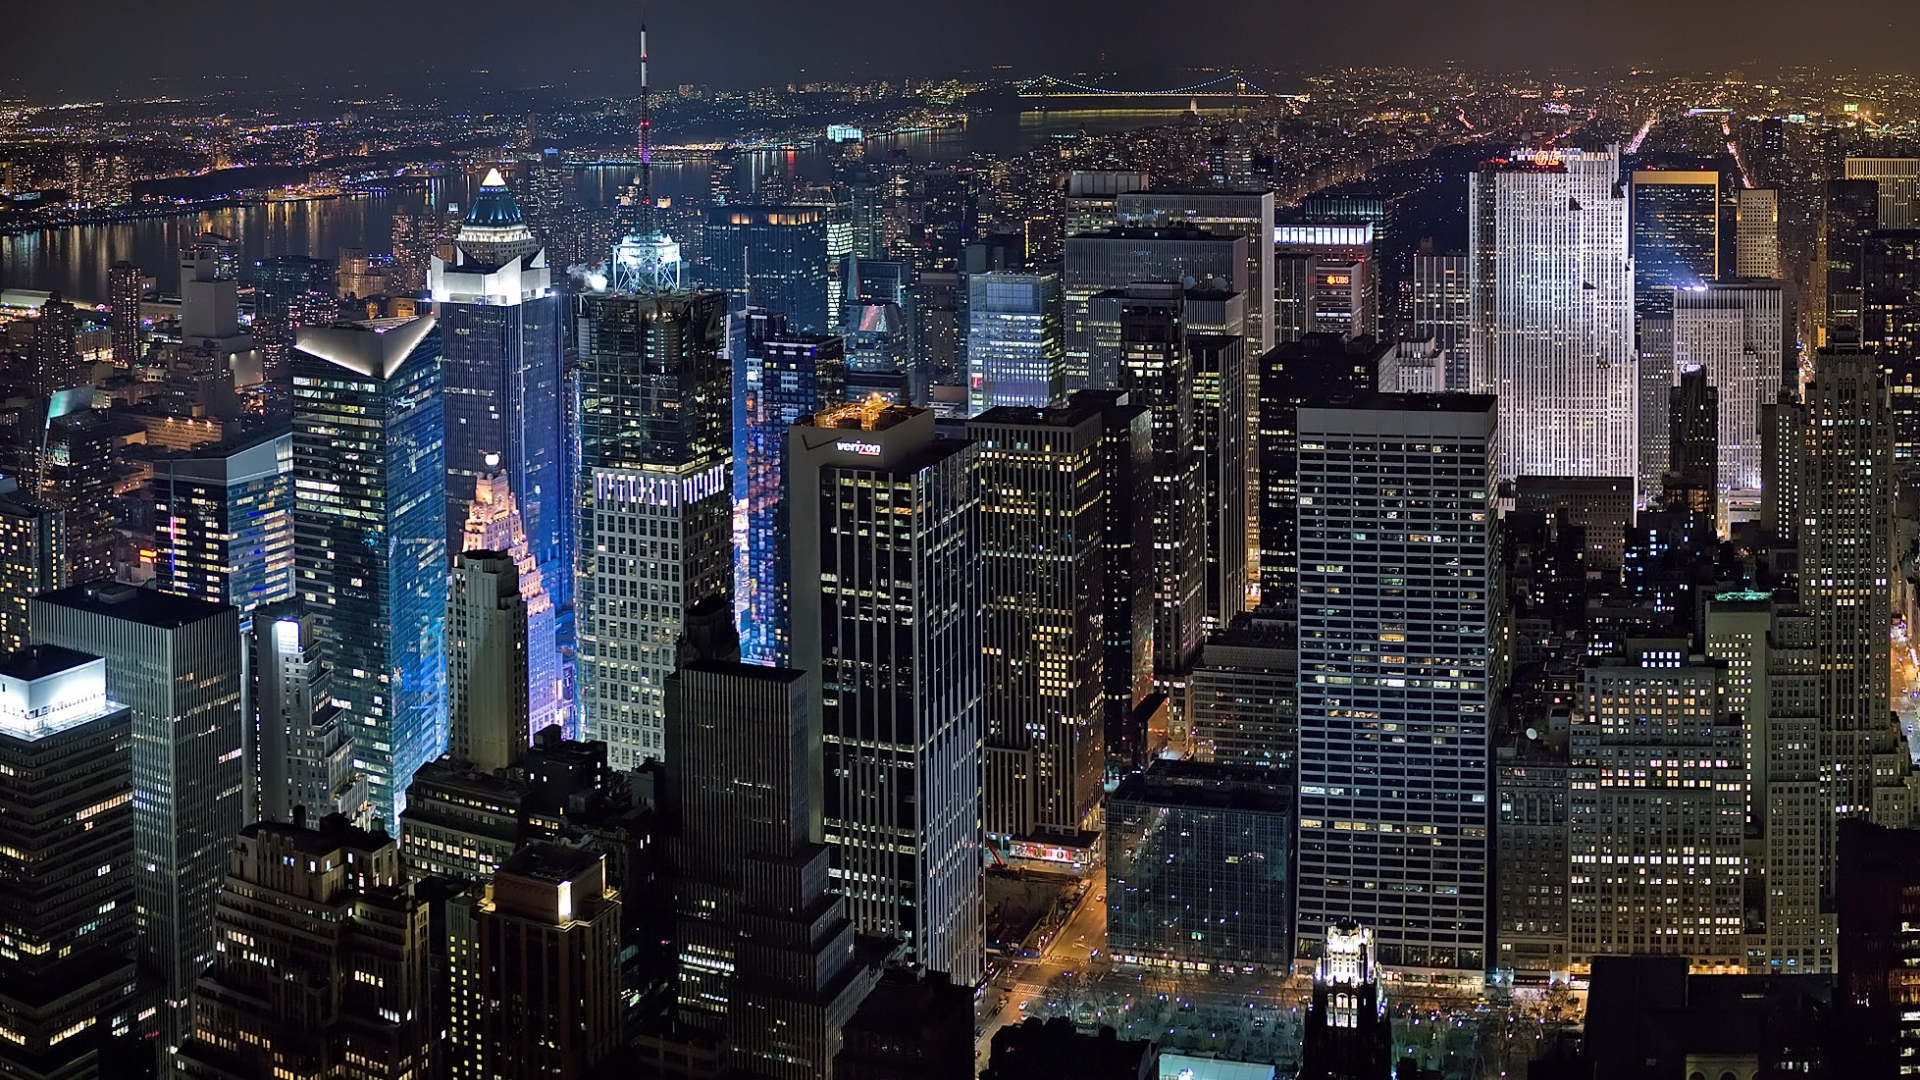 New York City at night Wallpaper 3682 1920x1080